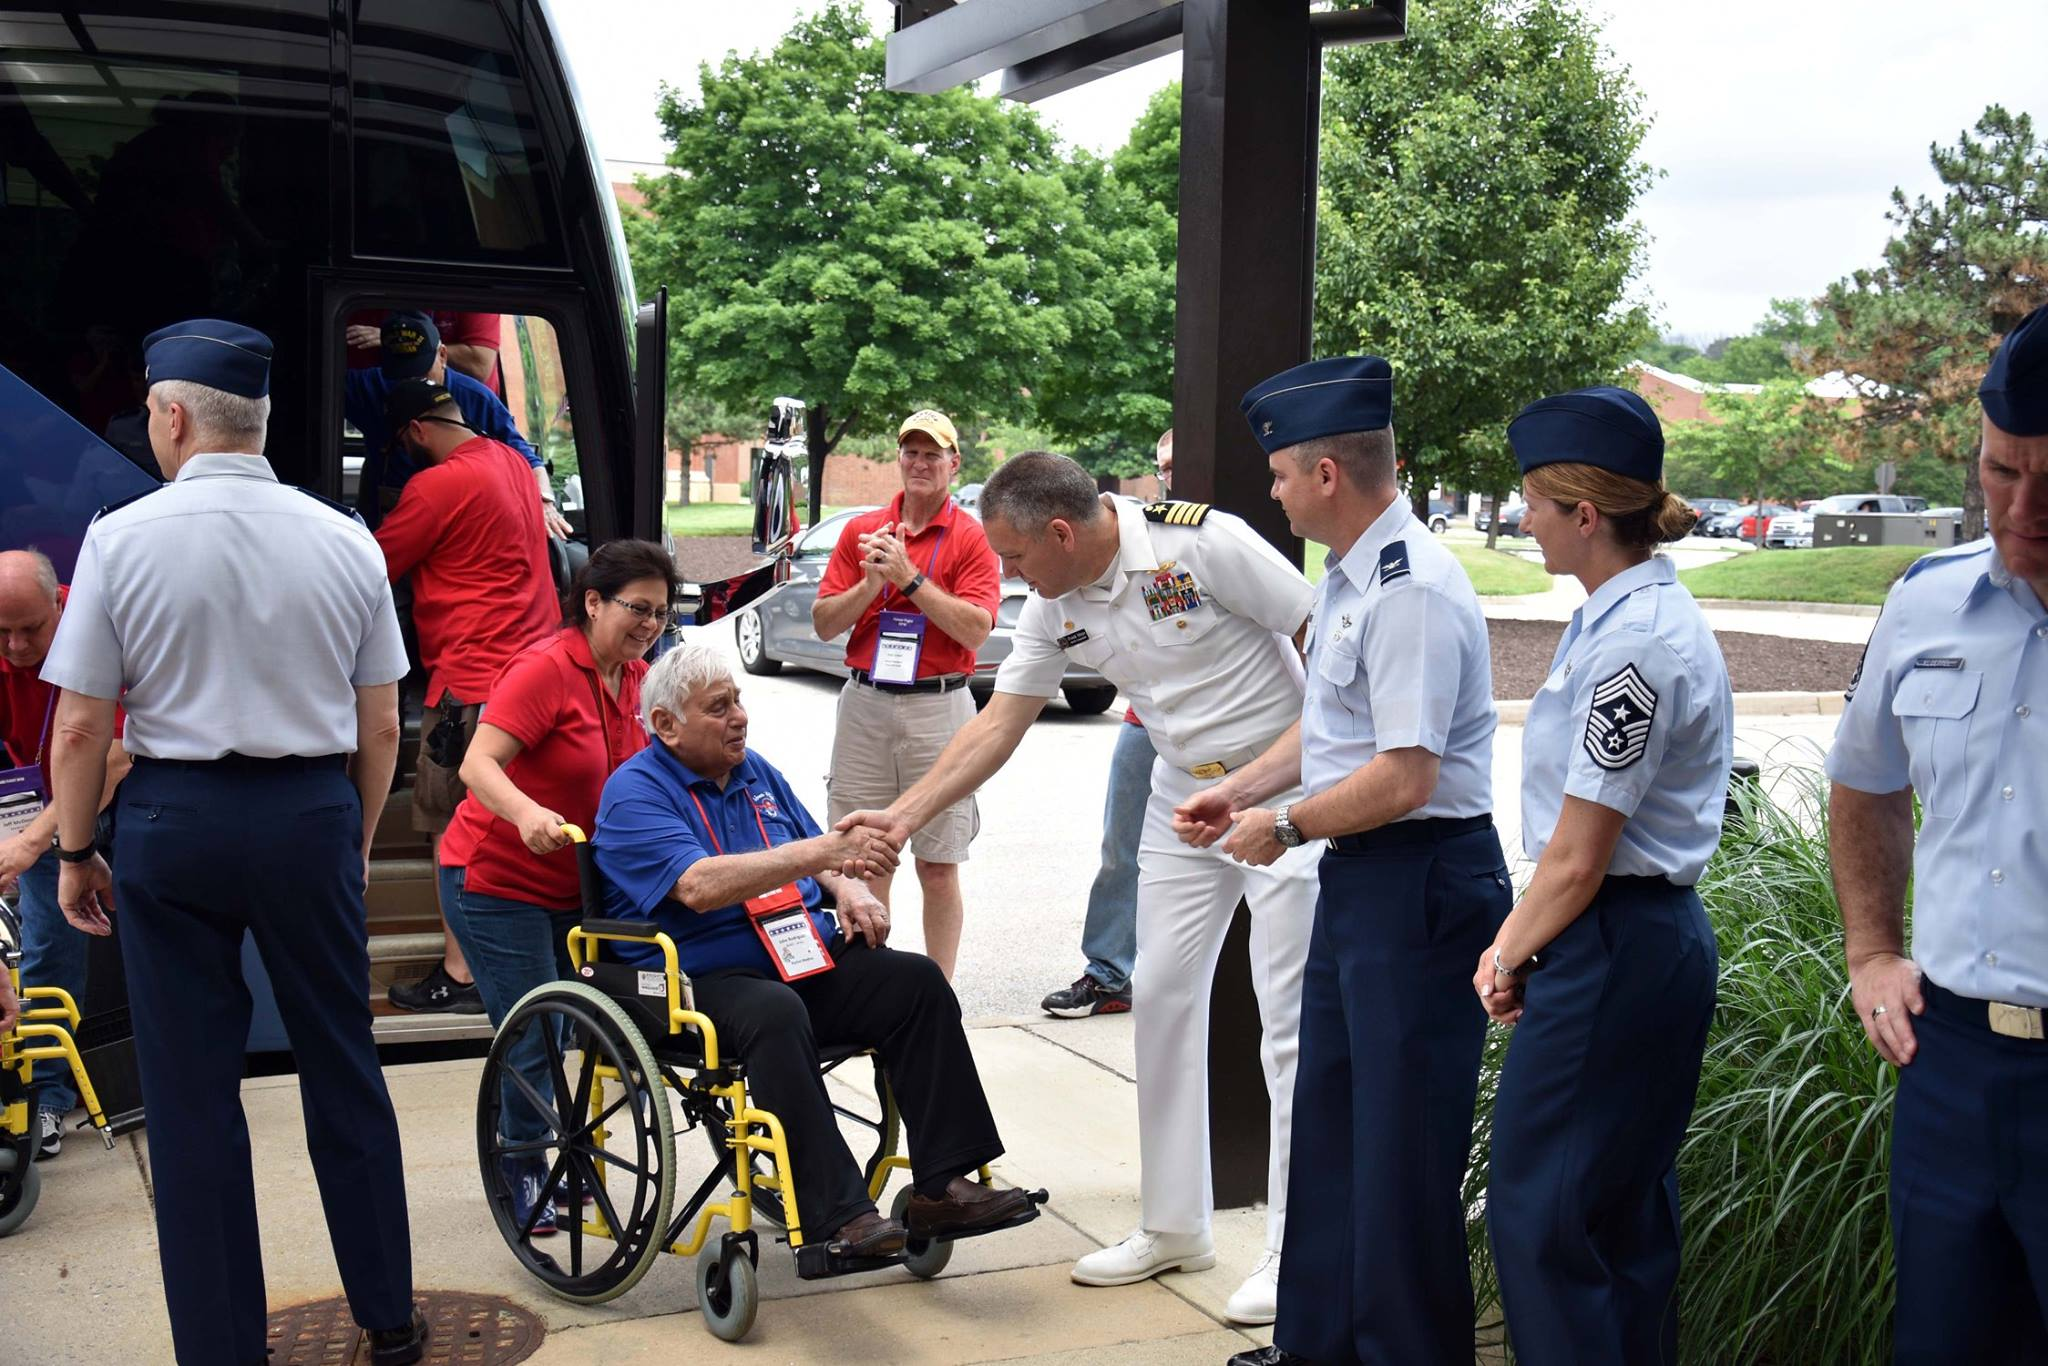 Honor Flight DFW 8th Annual Golf Classic gallery image #33